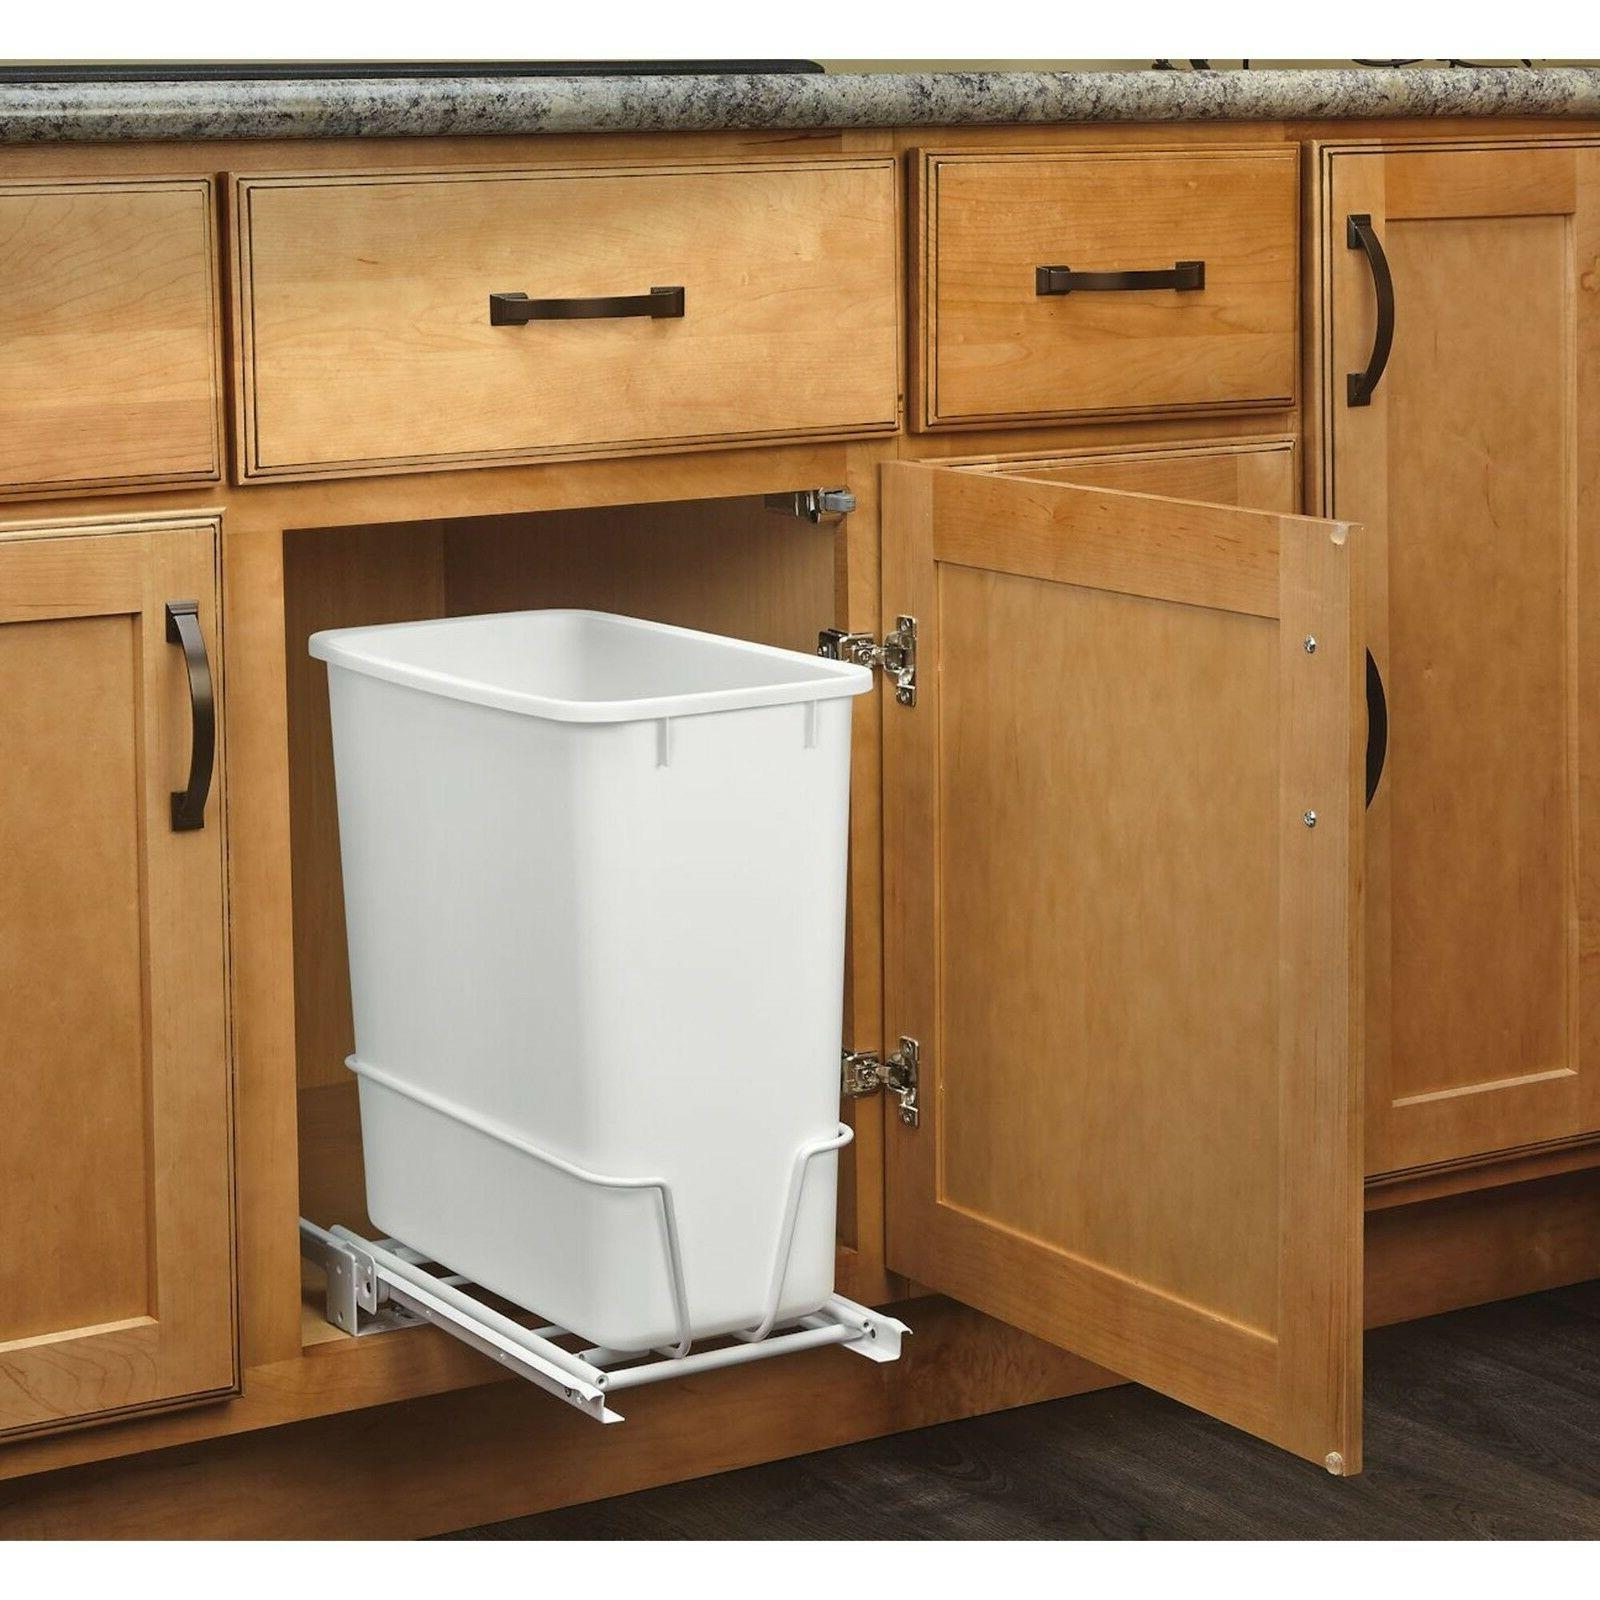 Narrow Kitchen Bathroom Waste Bin White